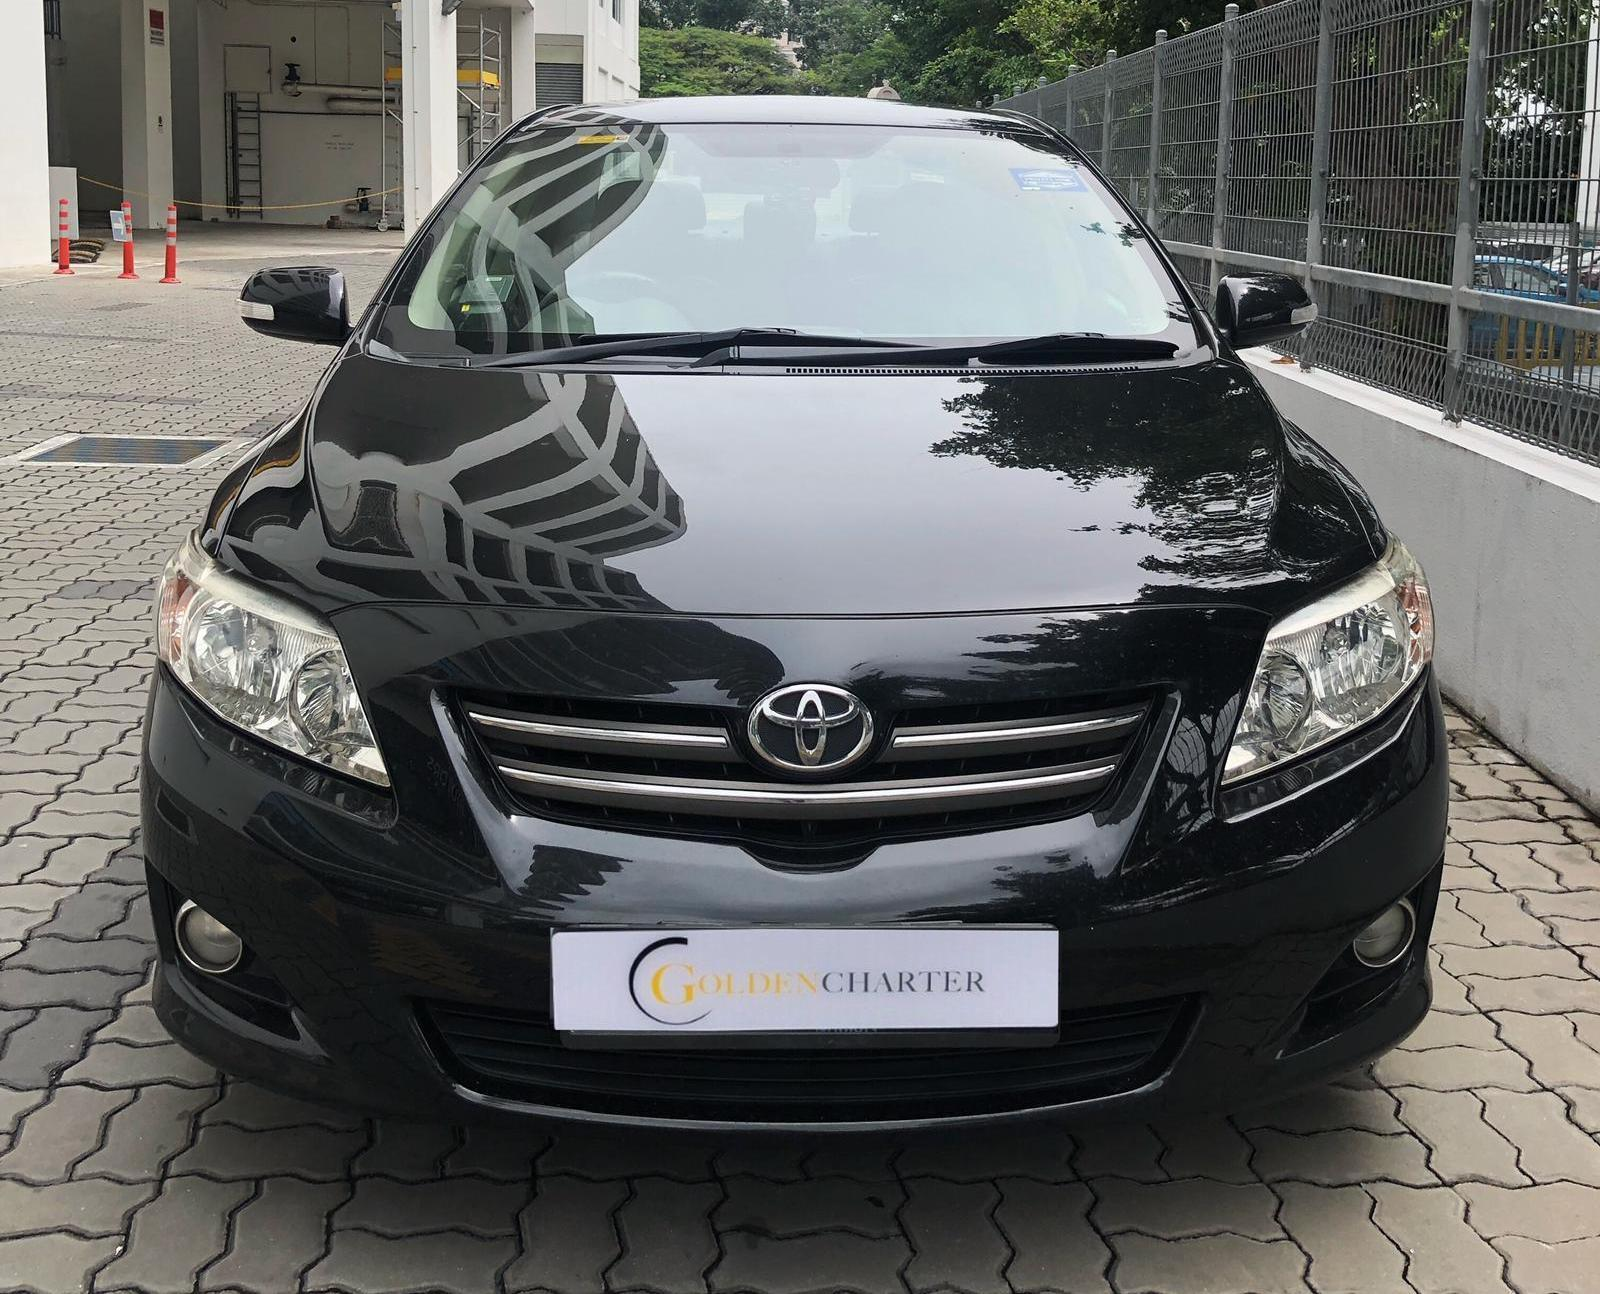 Toyota Altis SUPER CHEAP RENTAL PROMOTION FOR Grab/Ryde/Personal USE